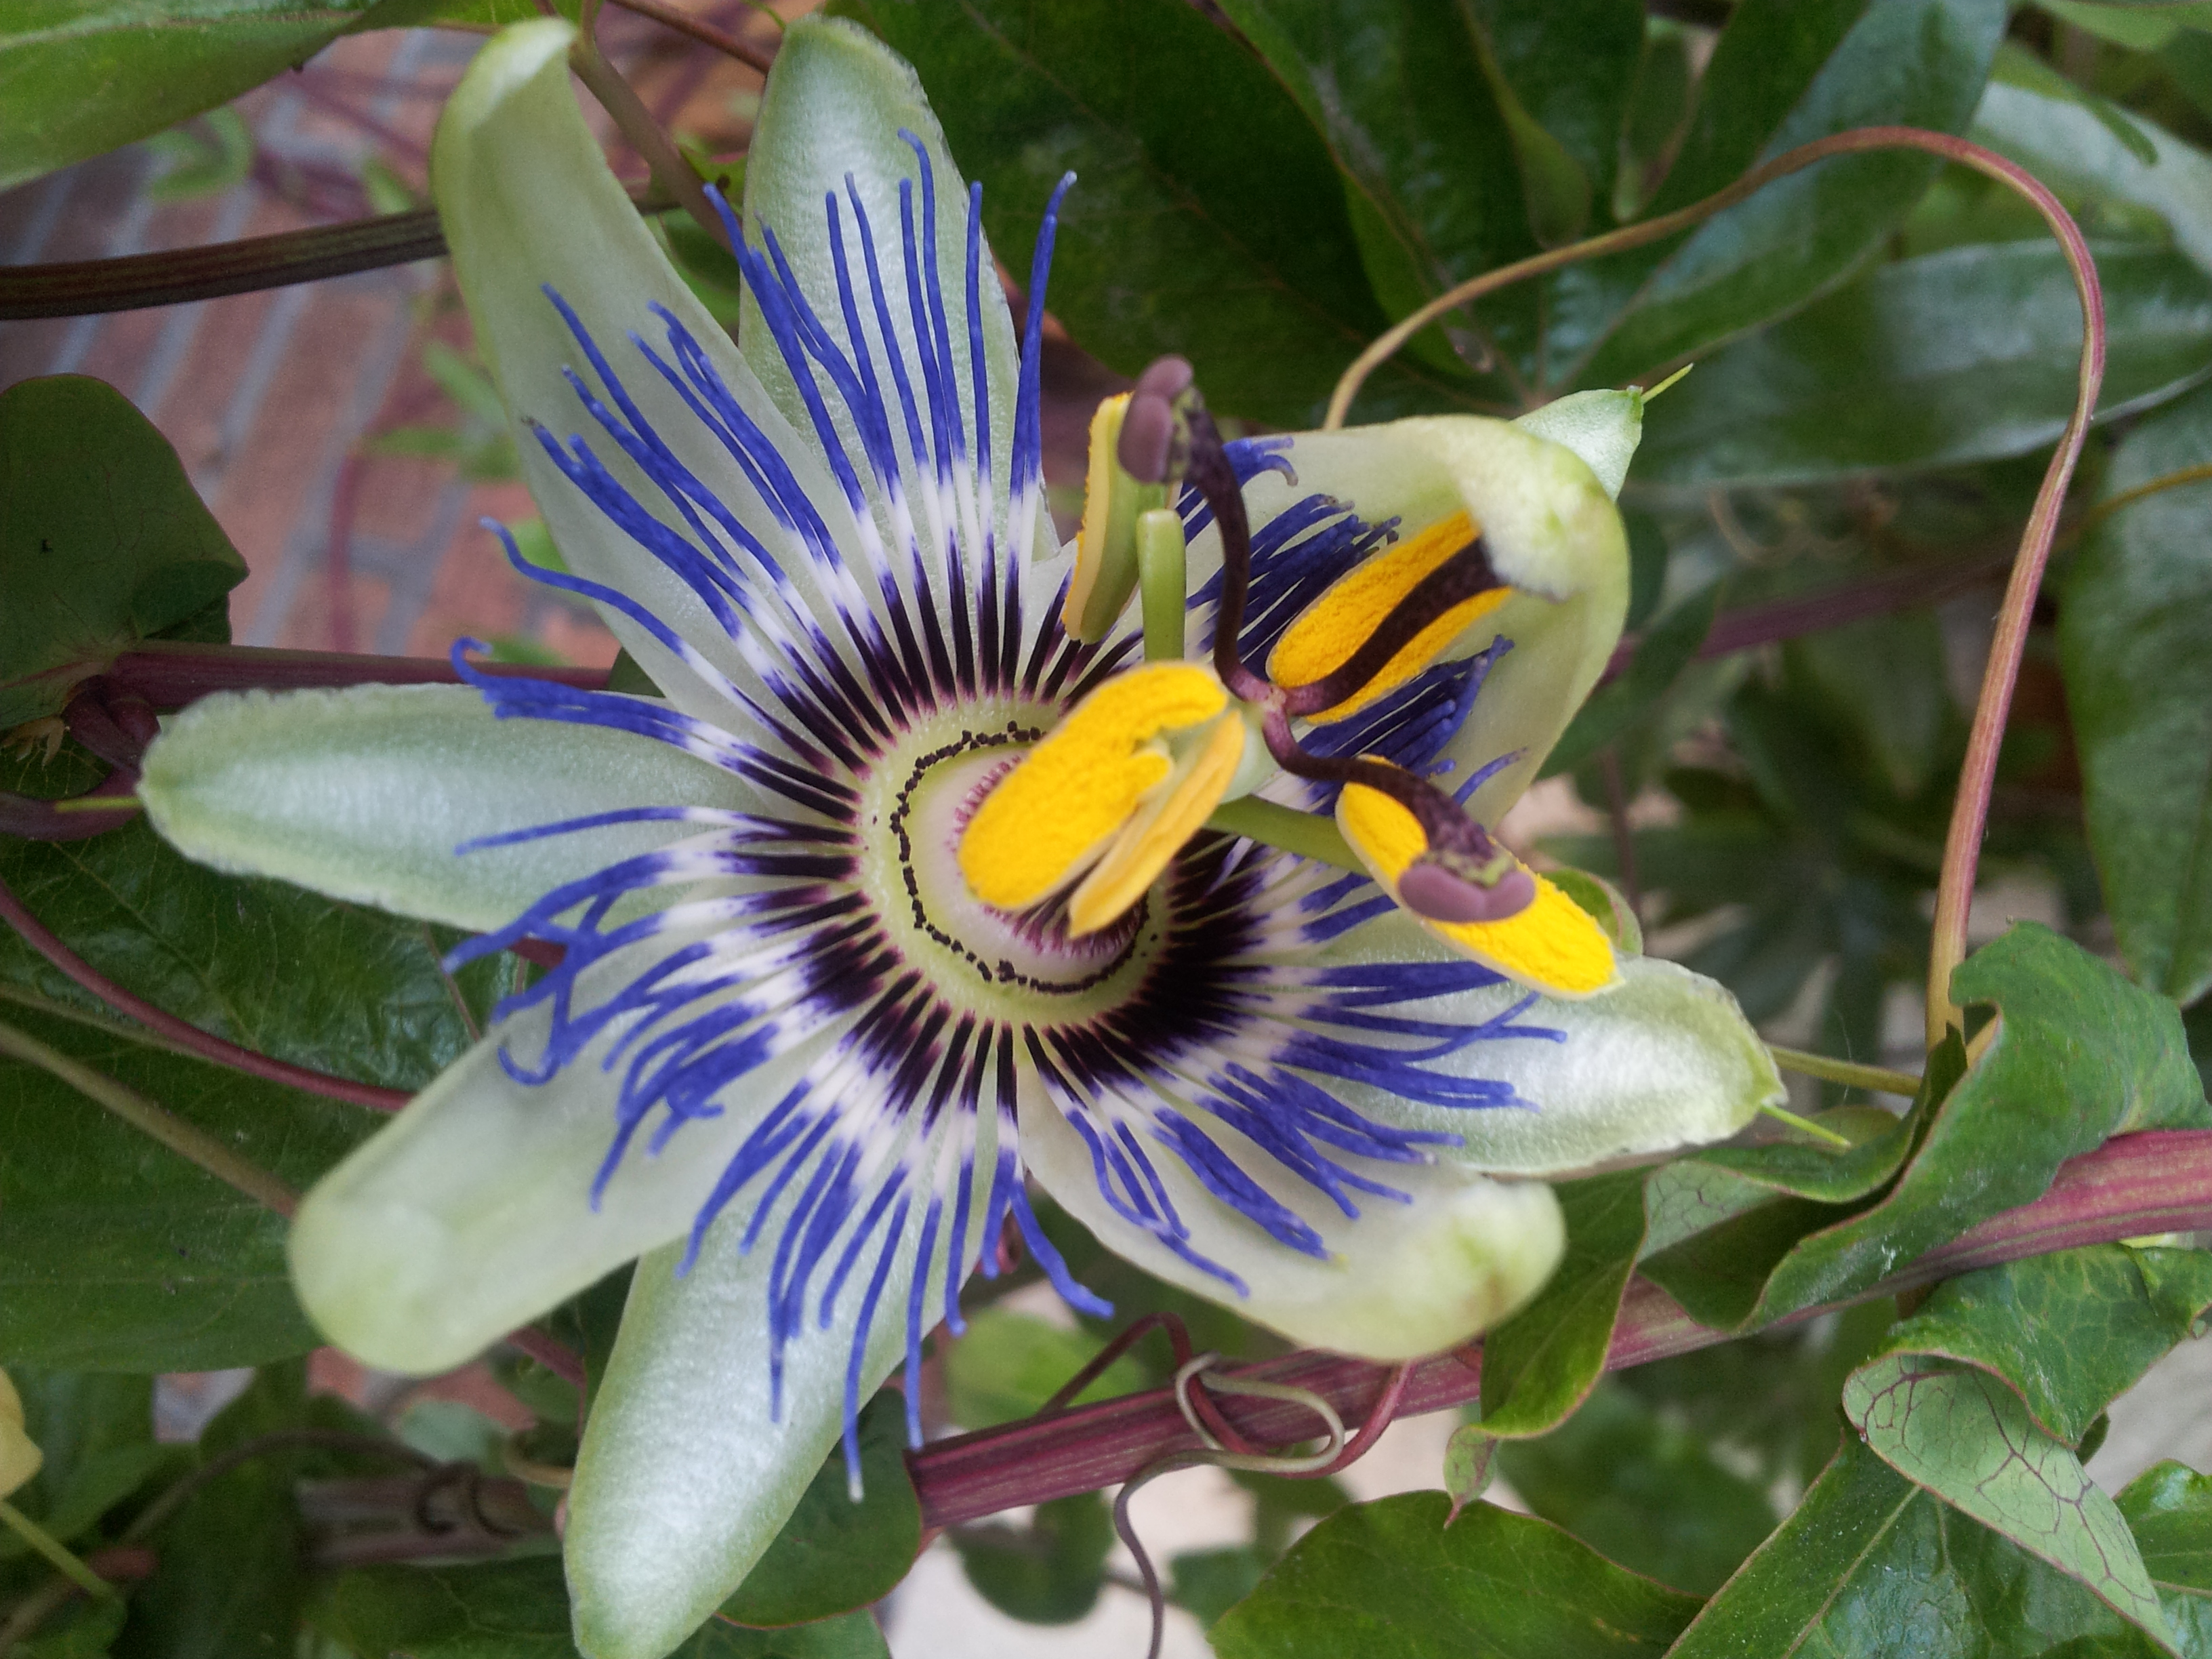 Two Proms and The Passion Flower